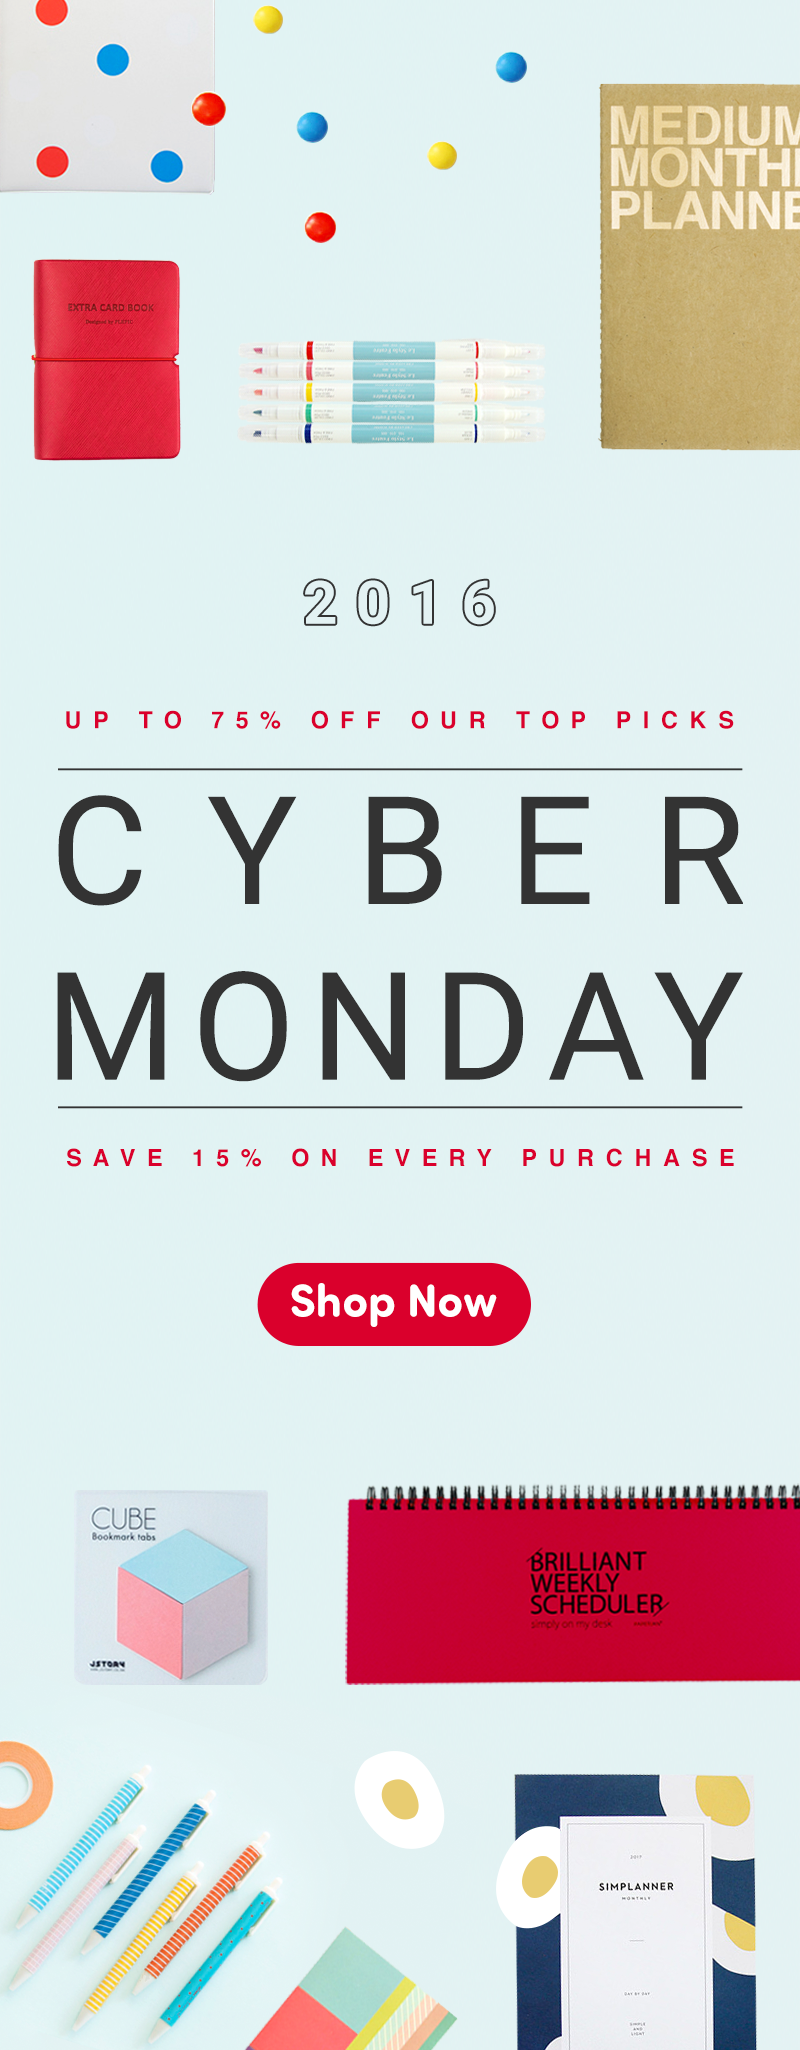 Cyber Monday 2016 Starts Today At Mochithings Just For You Save 15 On Everything Sitewide And Save Extra On Mochithings Cyber Monday Sales Cyber Monday